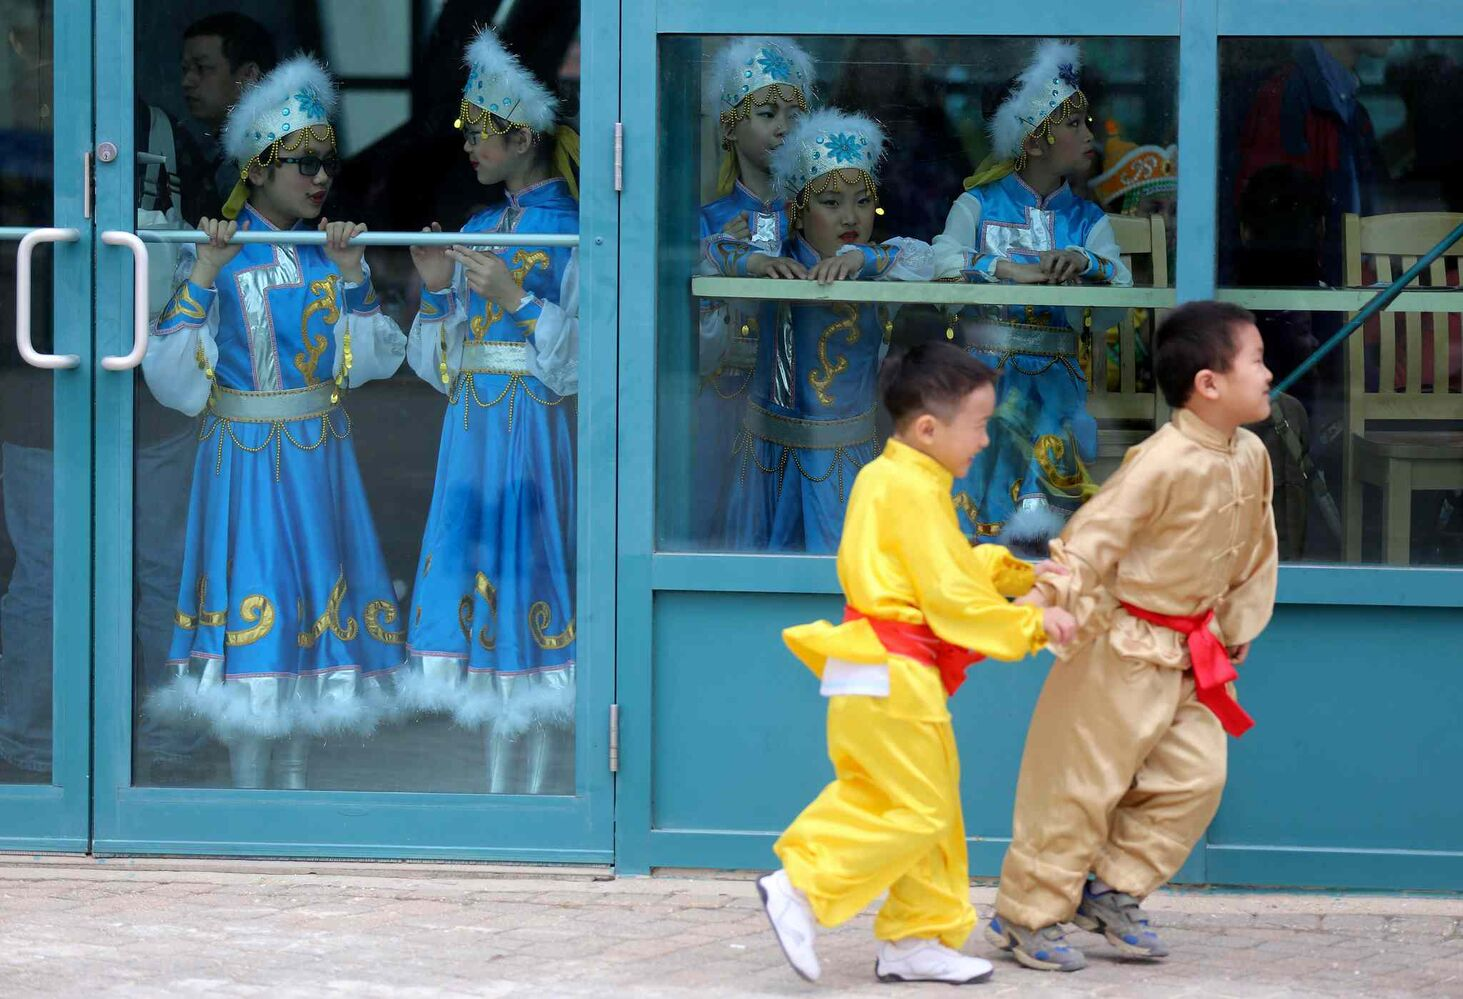 A young performer from the Great Wall Performing Arts school is pulled away by his friend after teasing another group of performers prior to taking the stage during Asian Heritage Month celebrations at The Forks, Sunday. (TREVOR HAGAN / WINNIPEG FREE PRESS)